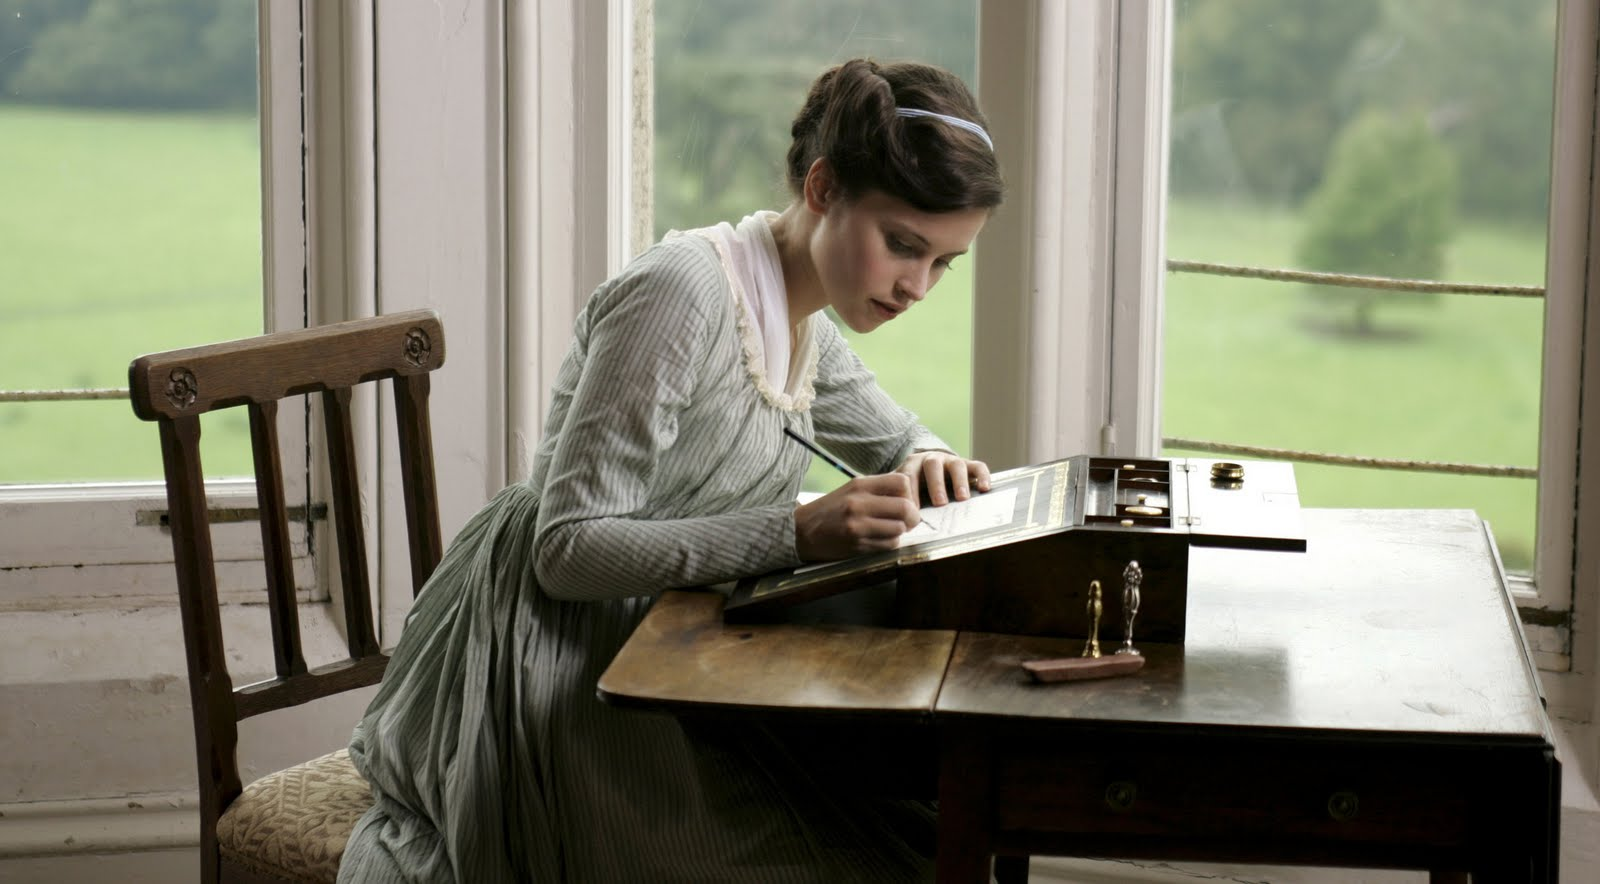 Un peu d'aide éditoriale pour le forum ? Felicity-Jones-Northanger-Abbey-felicity-jones-16178818-2560-1414